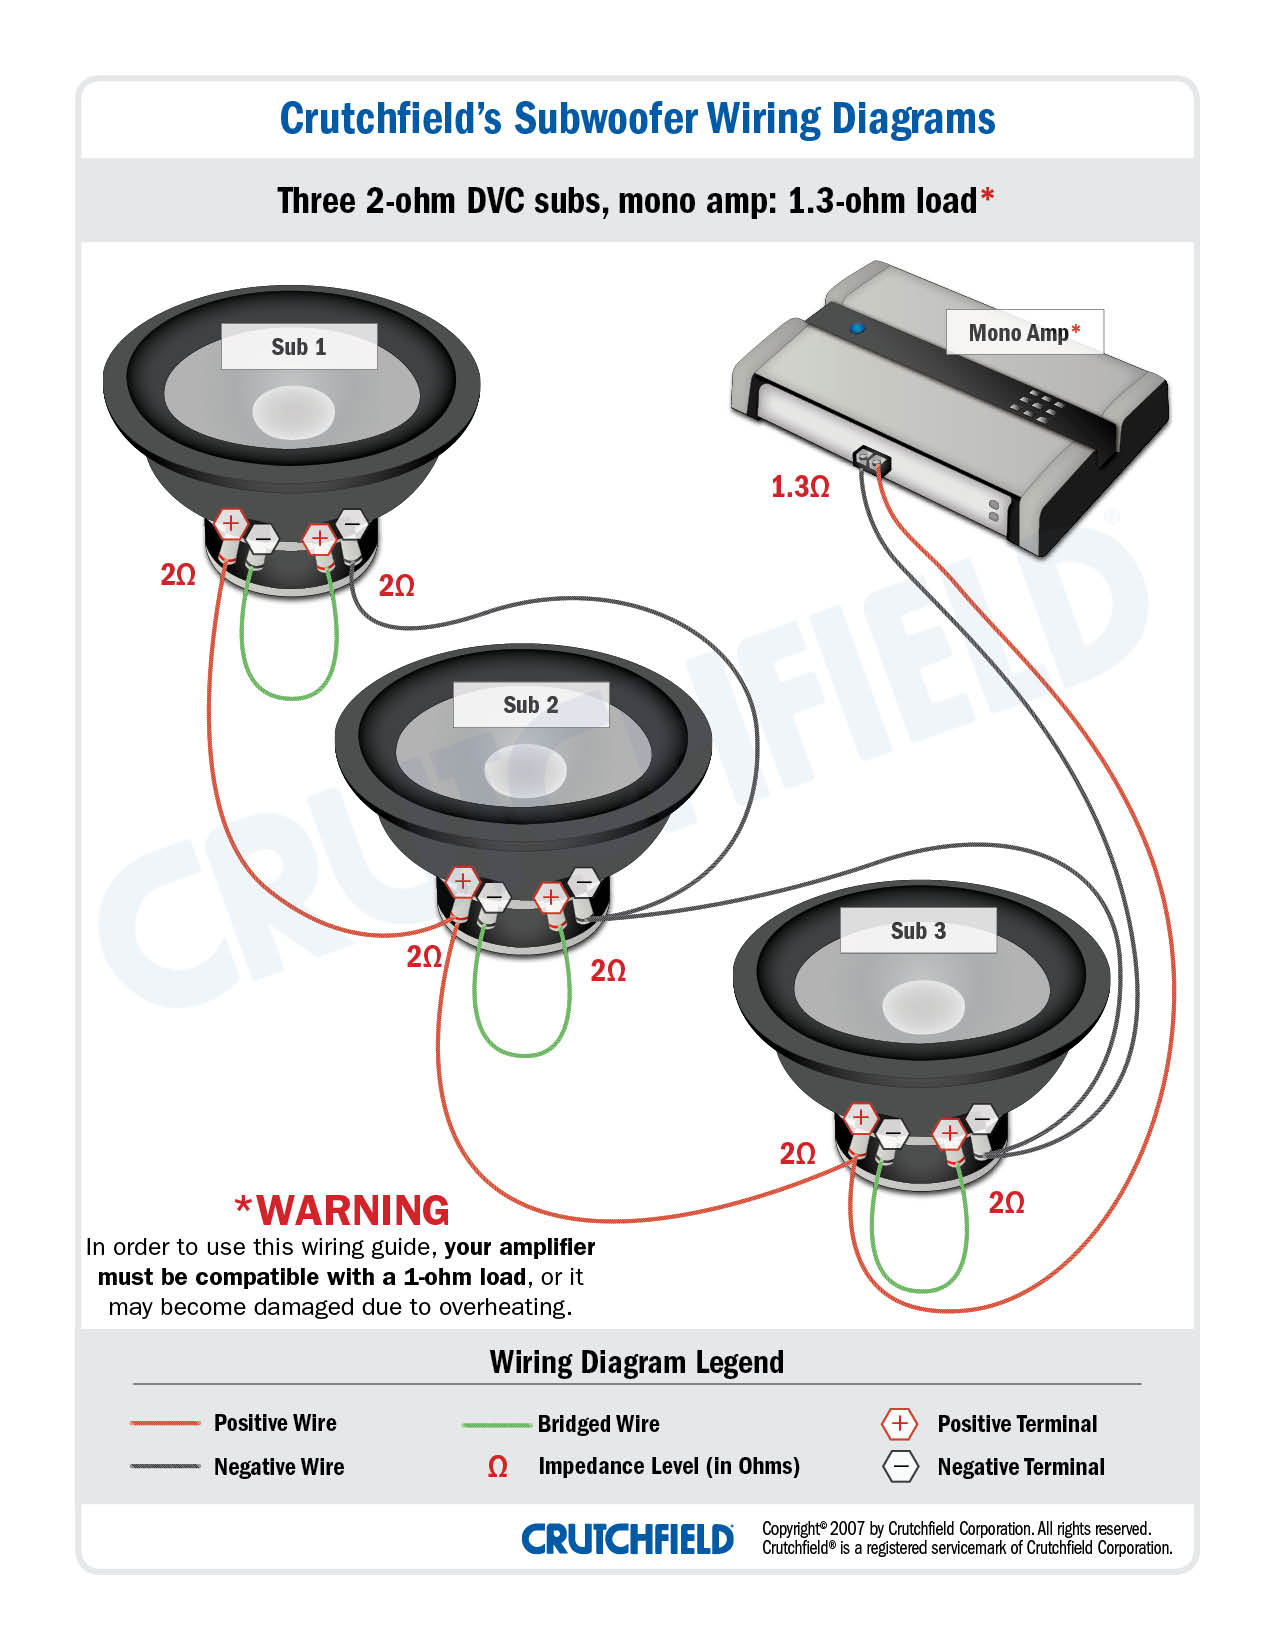 3 DVC 2 ohm mono low imp wiring subwoofers what's all this about ohms? 1 ohm speaker wiring diagram at eliteediting.co